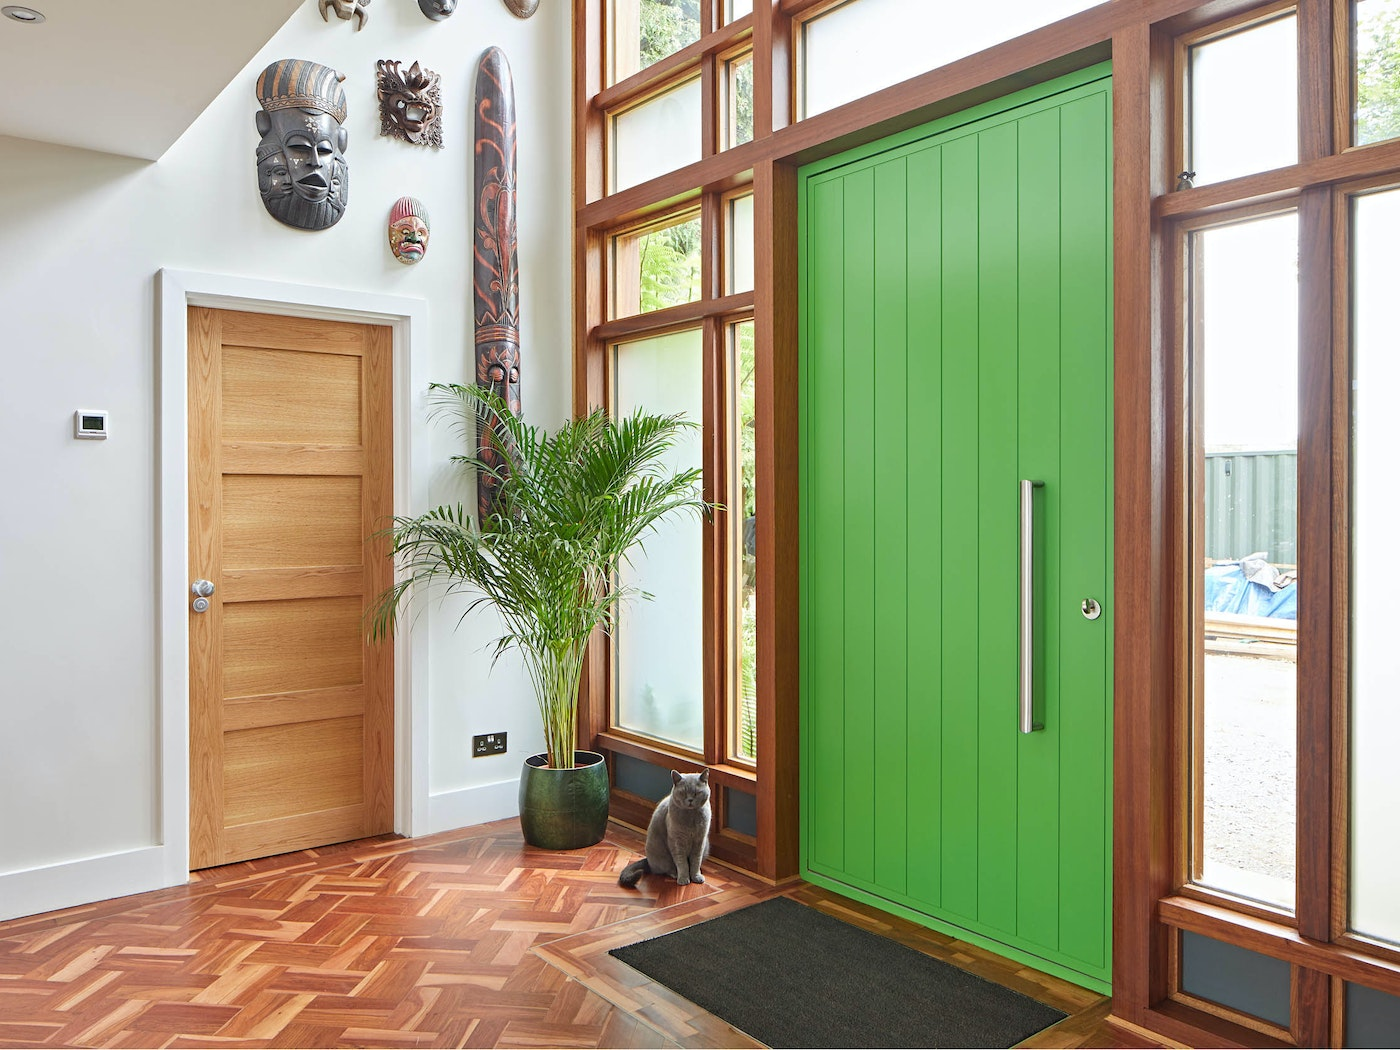 Internally, warm parquet flooring works well with the aluminium curtain frame and nicely contrasts with the vivid green door